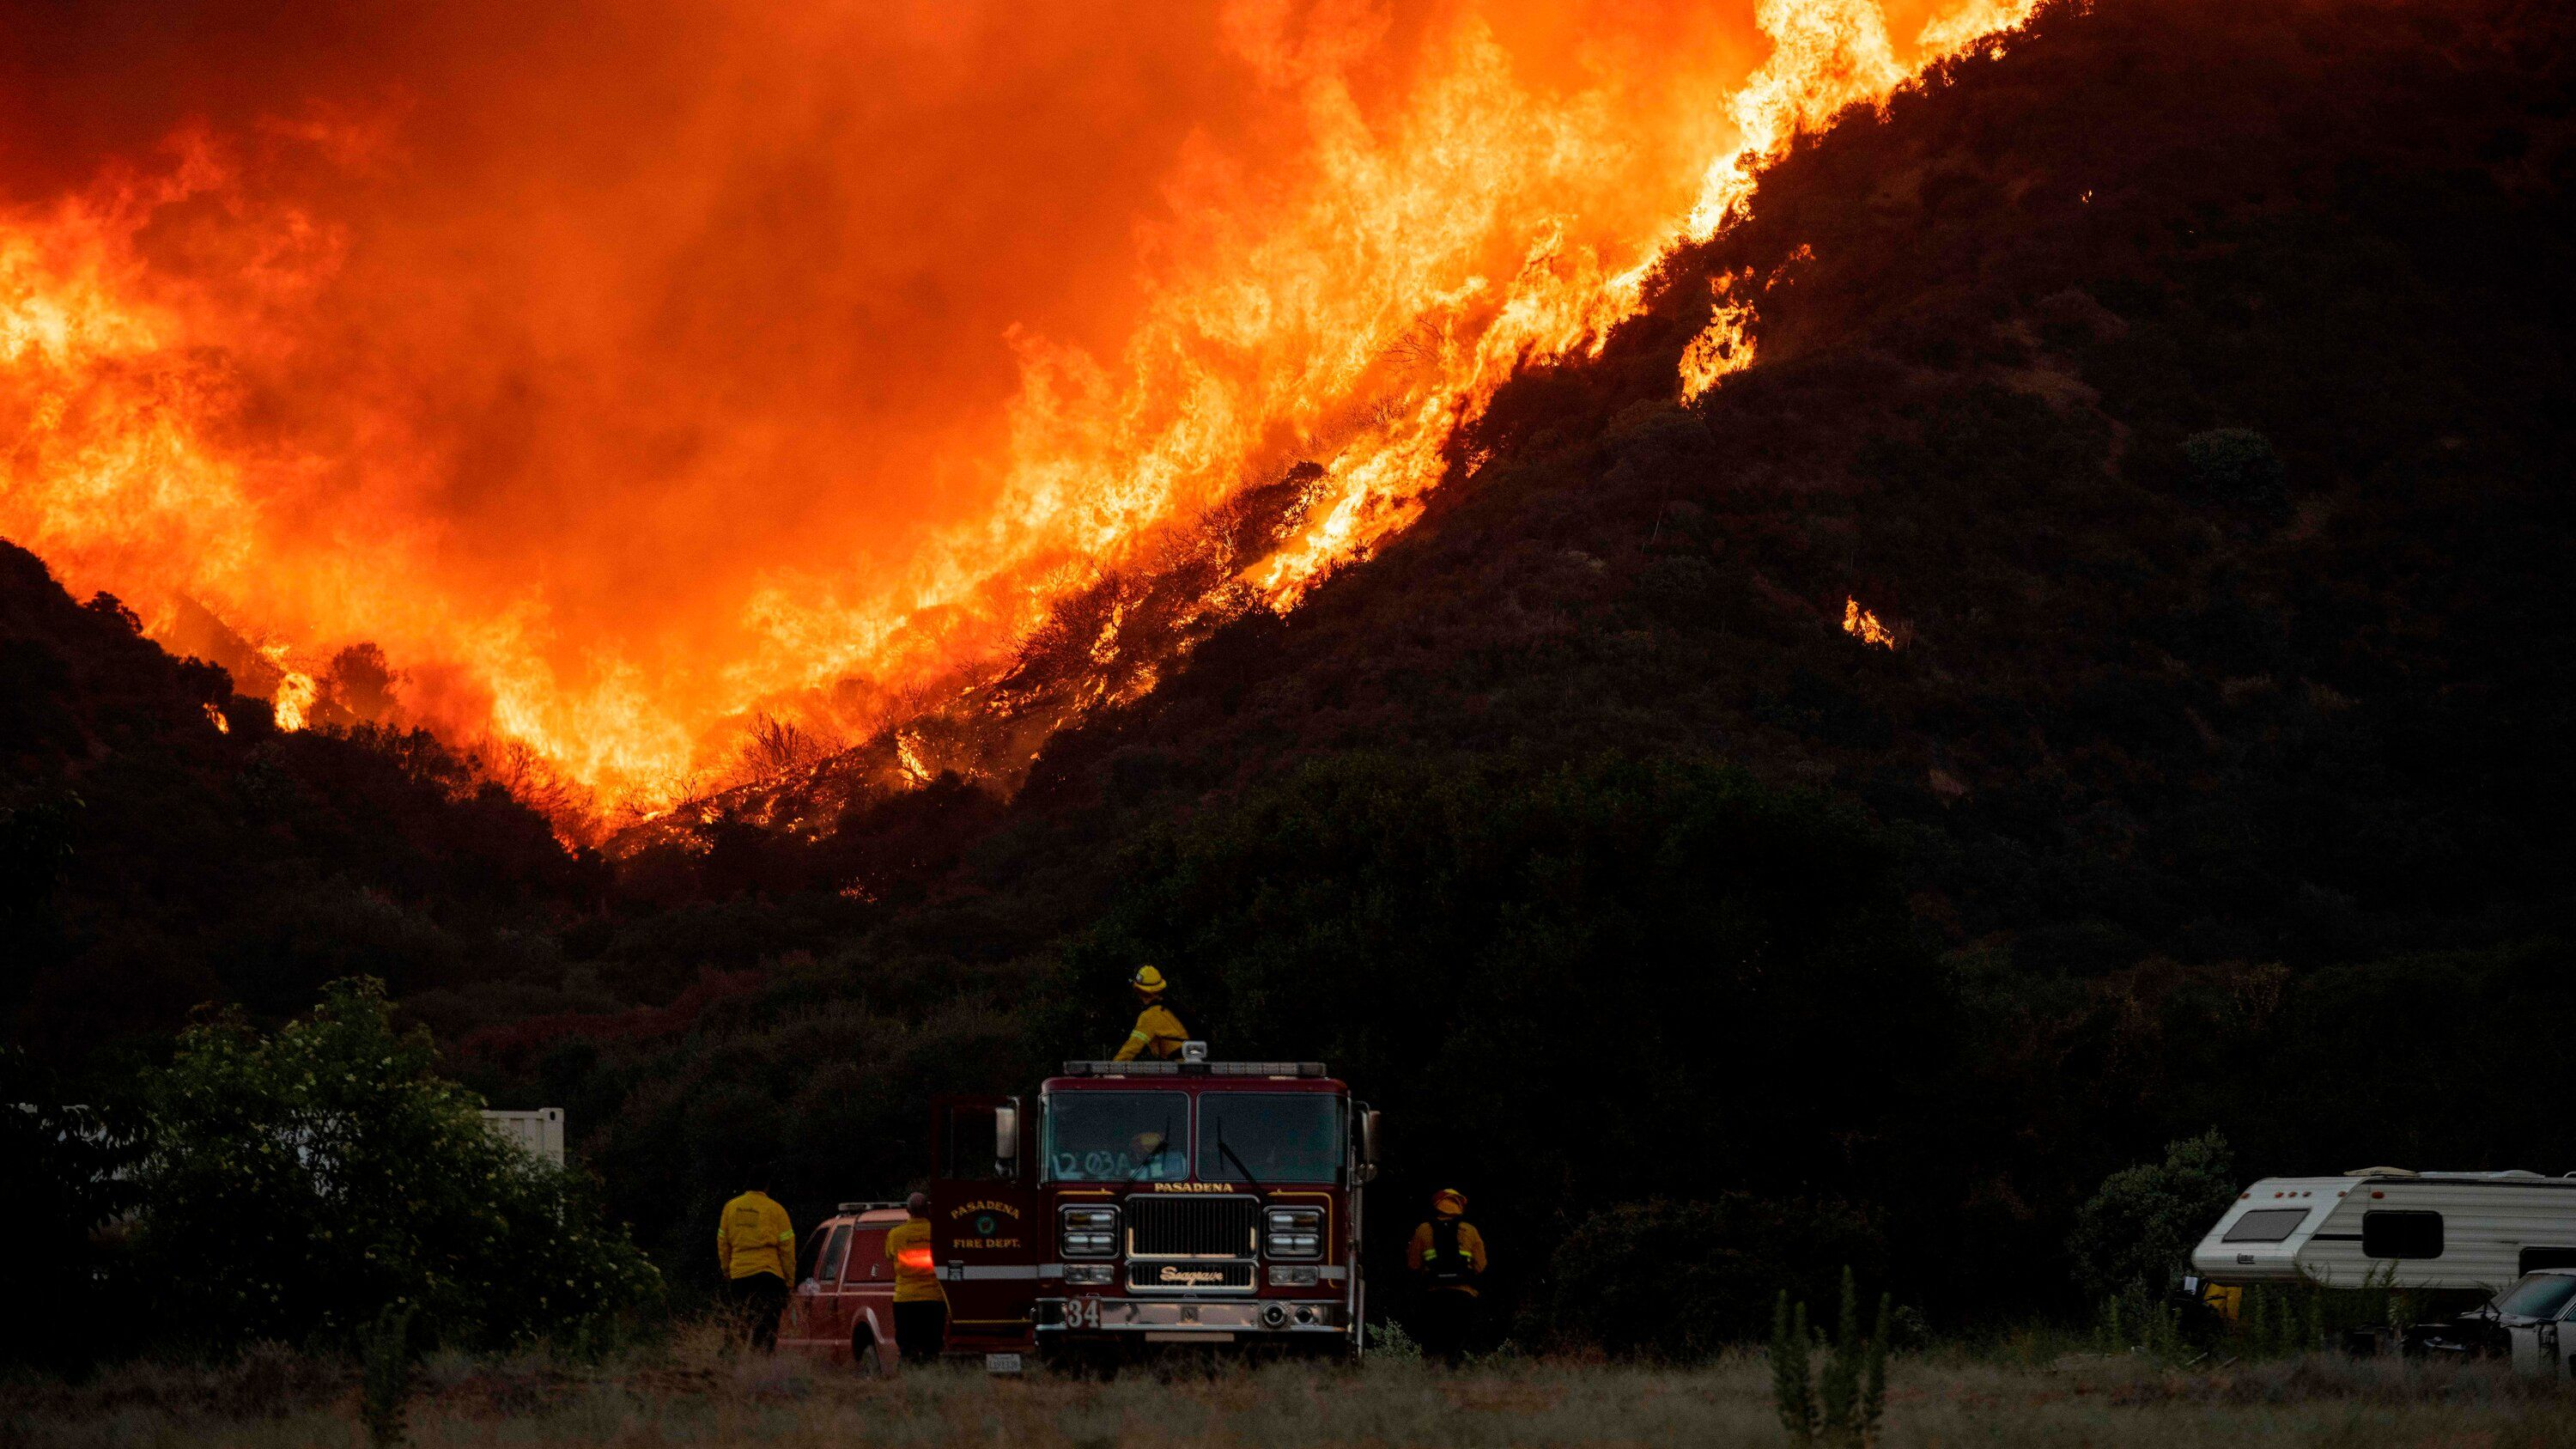 Apple Fire Leads To Evacuation Order For 7000 In California The Wildfire Near The San Bernardino N In 2020 San Bernardino National Forest Fire San Luis Obispo County